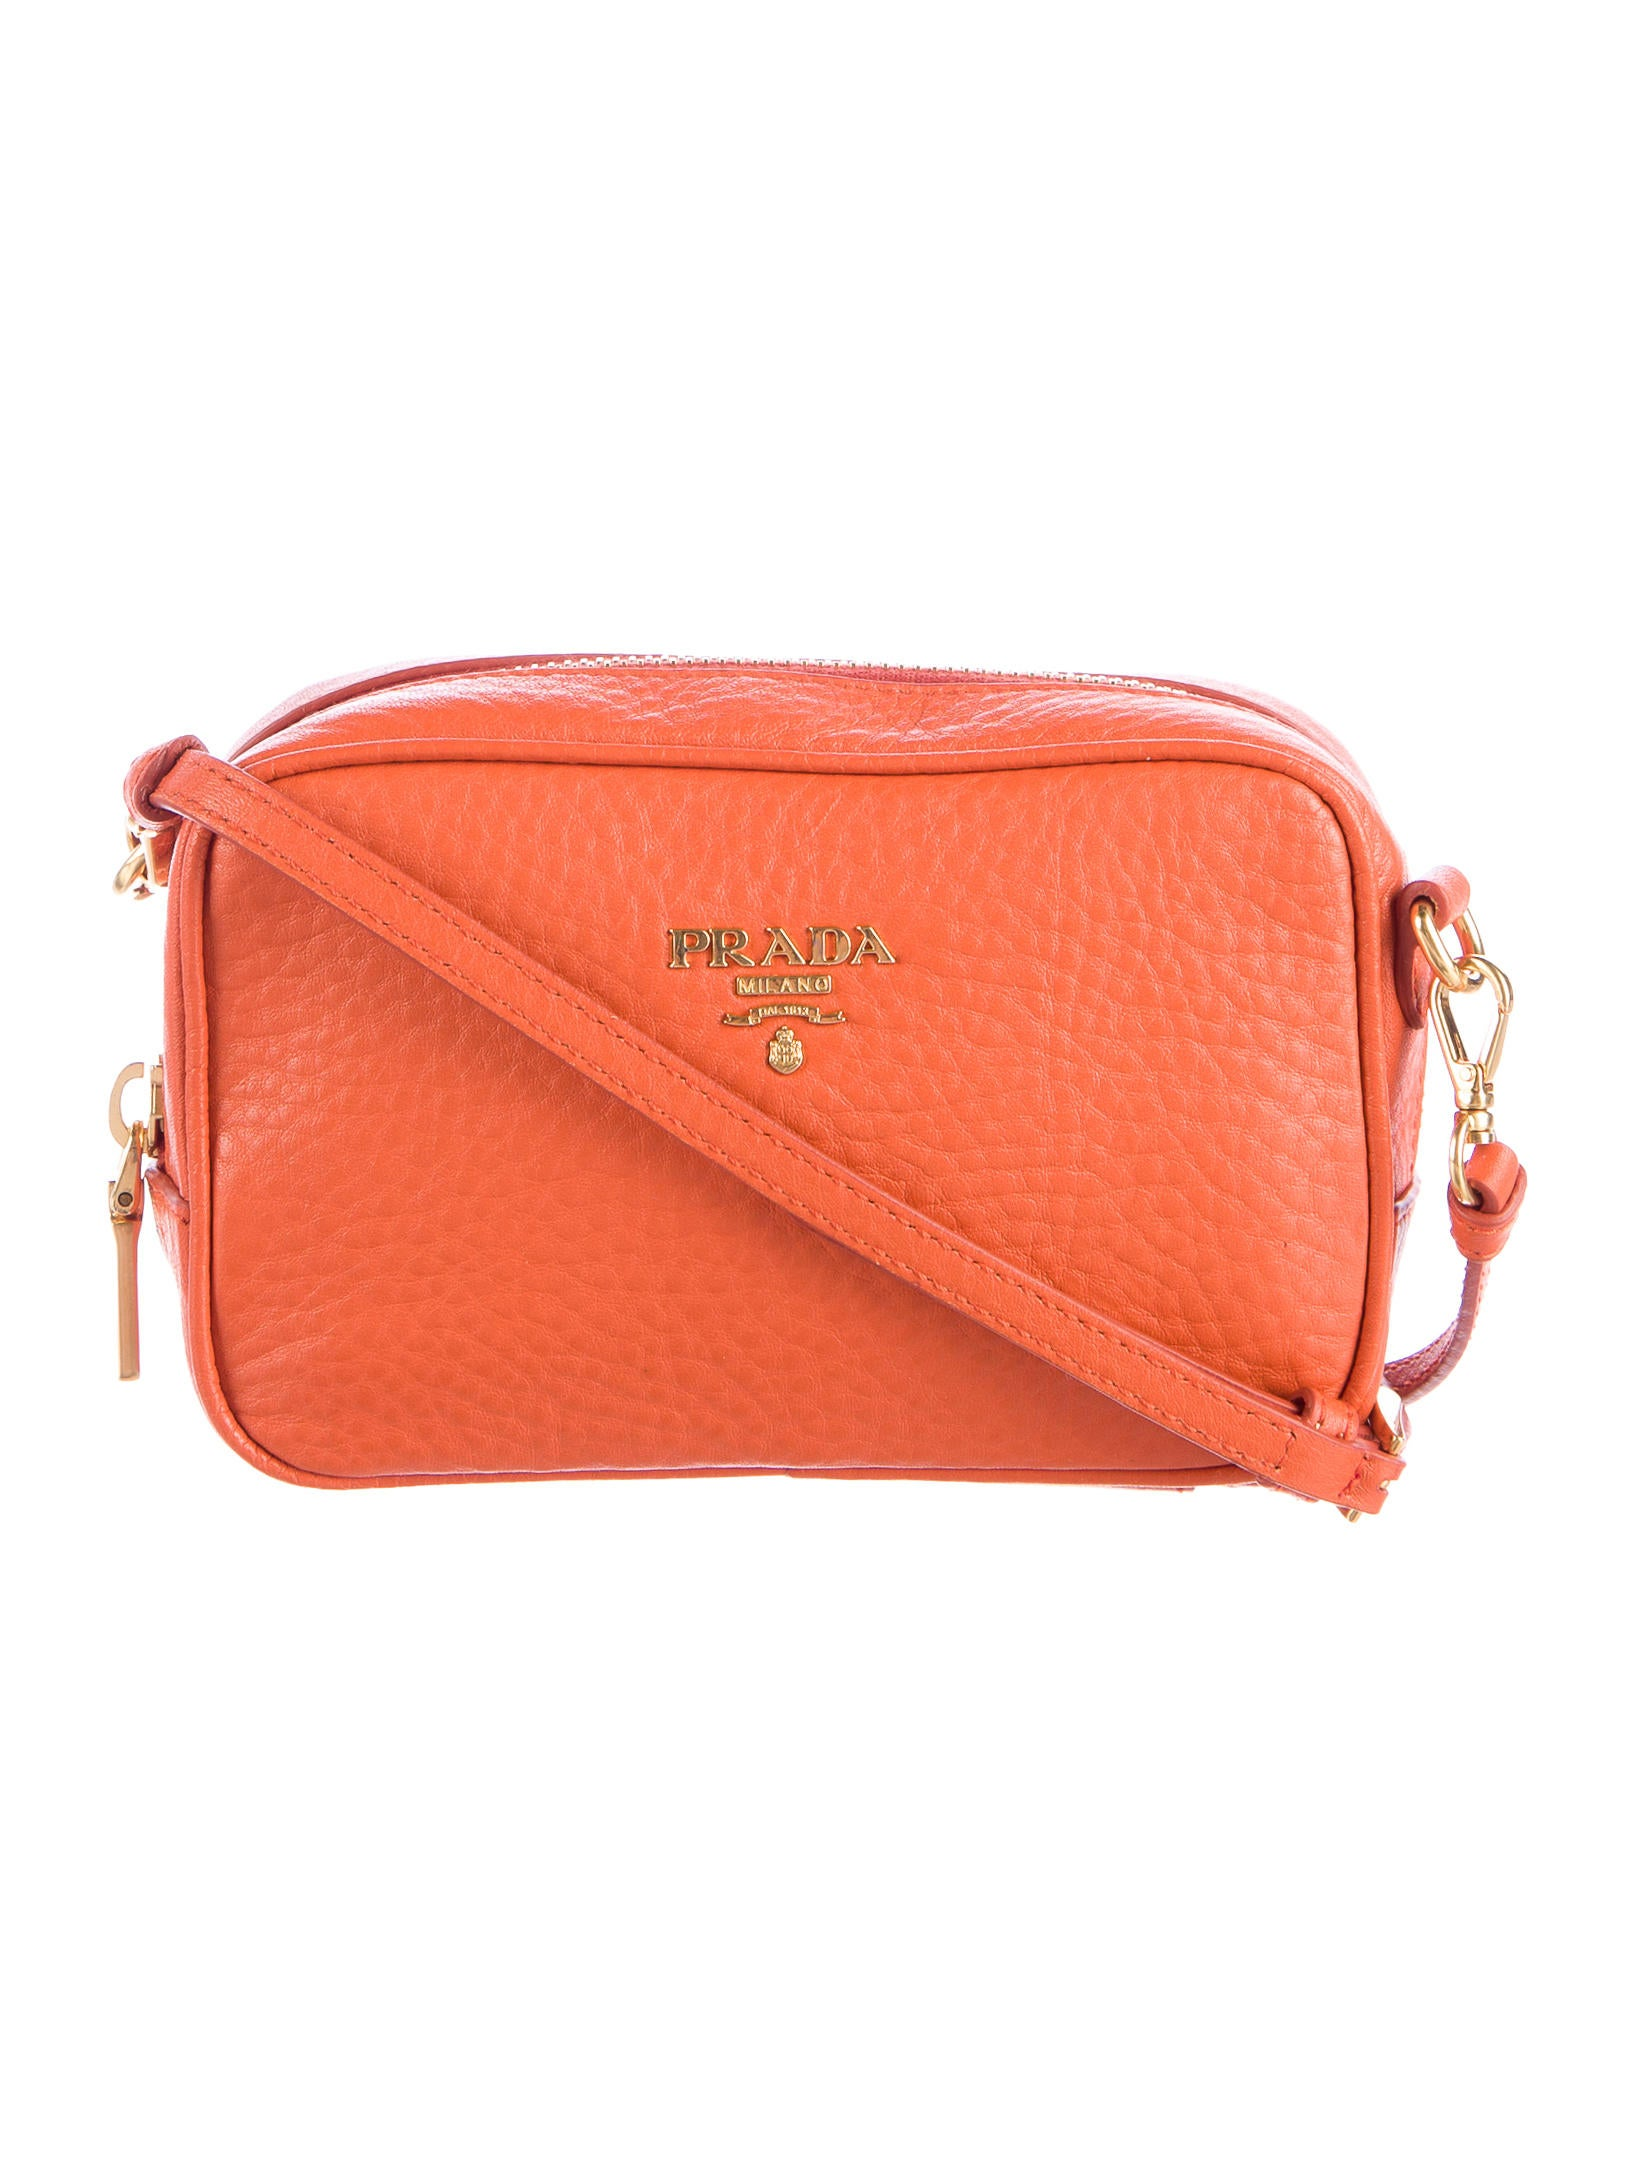 4588d7037574 Prada Vitello Daino Crossbody Bag w  Tags - Handbags - PRA103066 ...